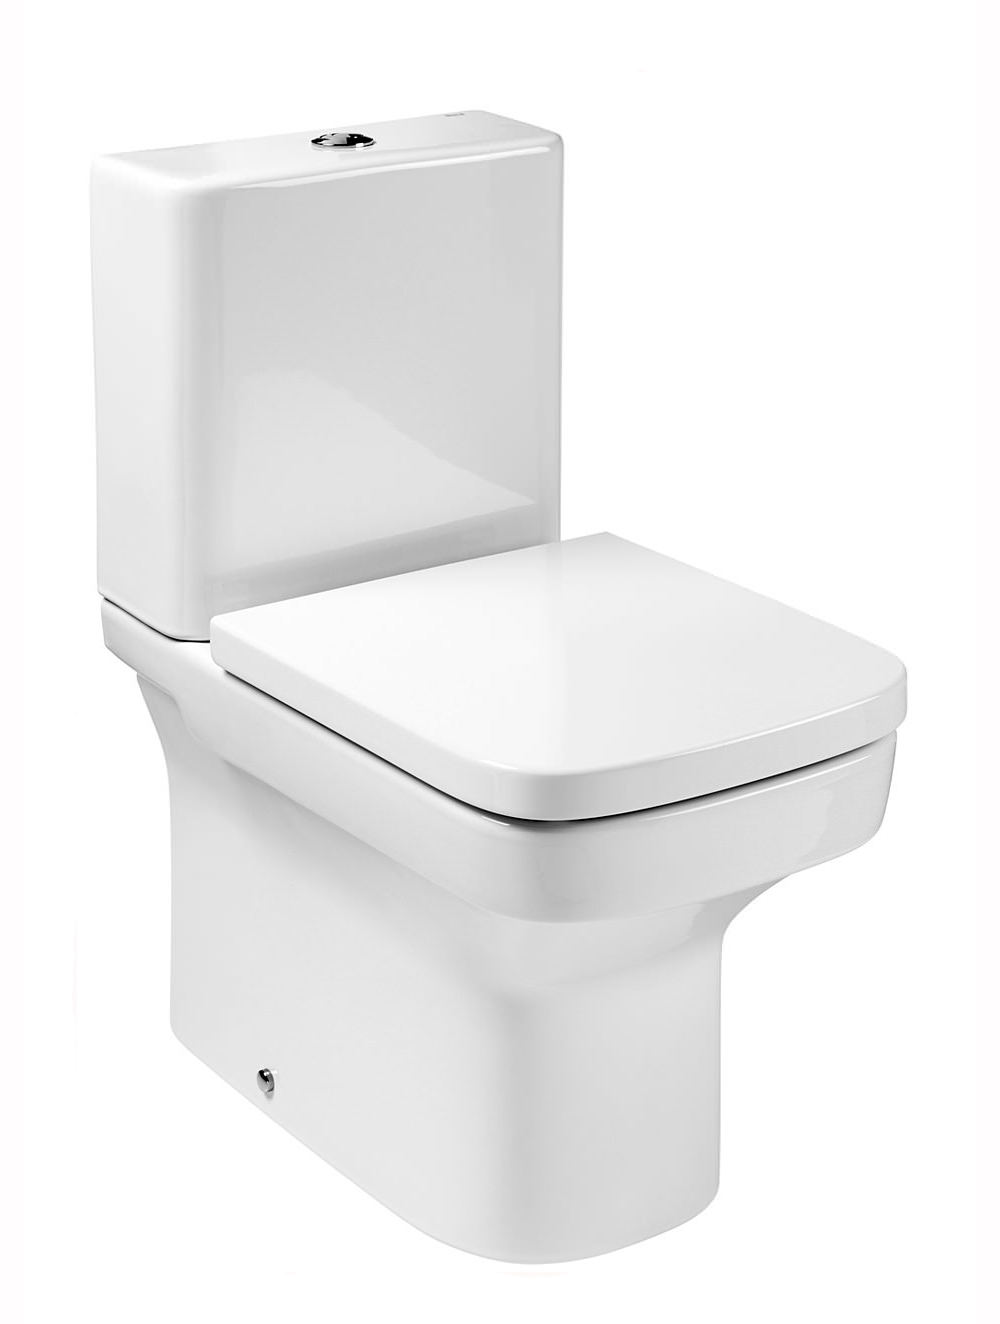 Roca Dama N Compact Close Coupled Wc Pan With Fixing 600mm